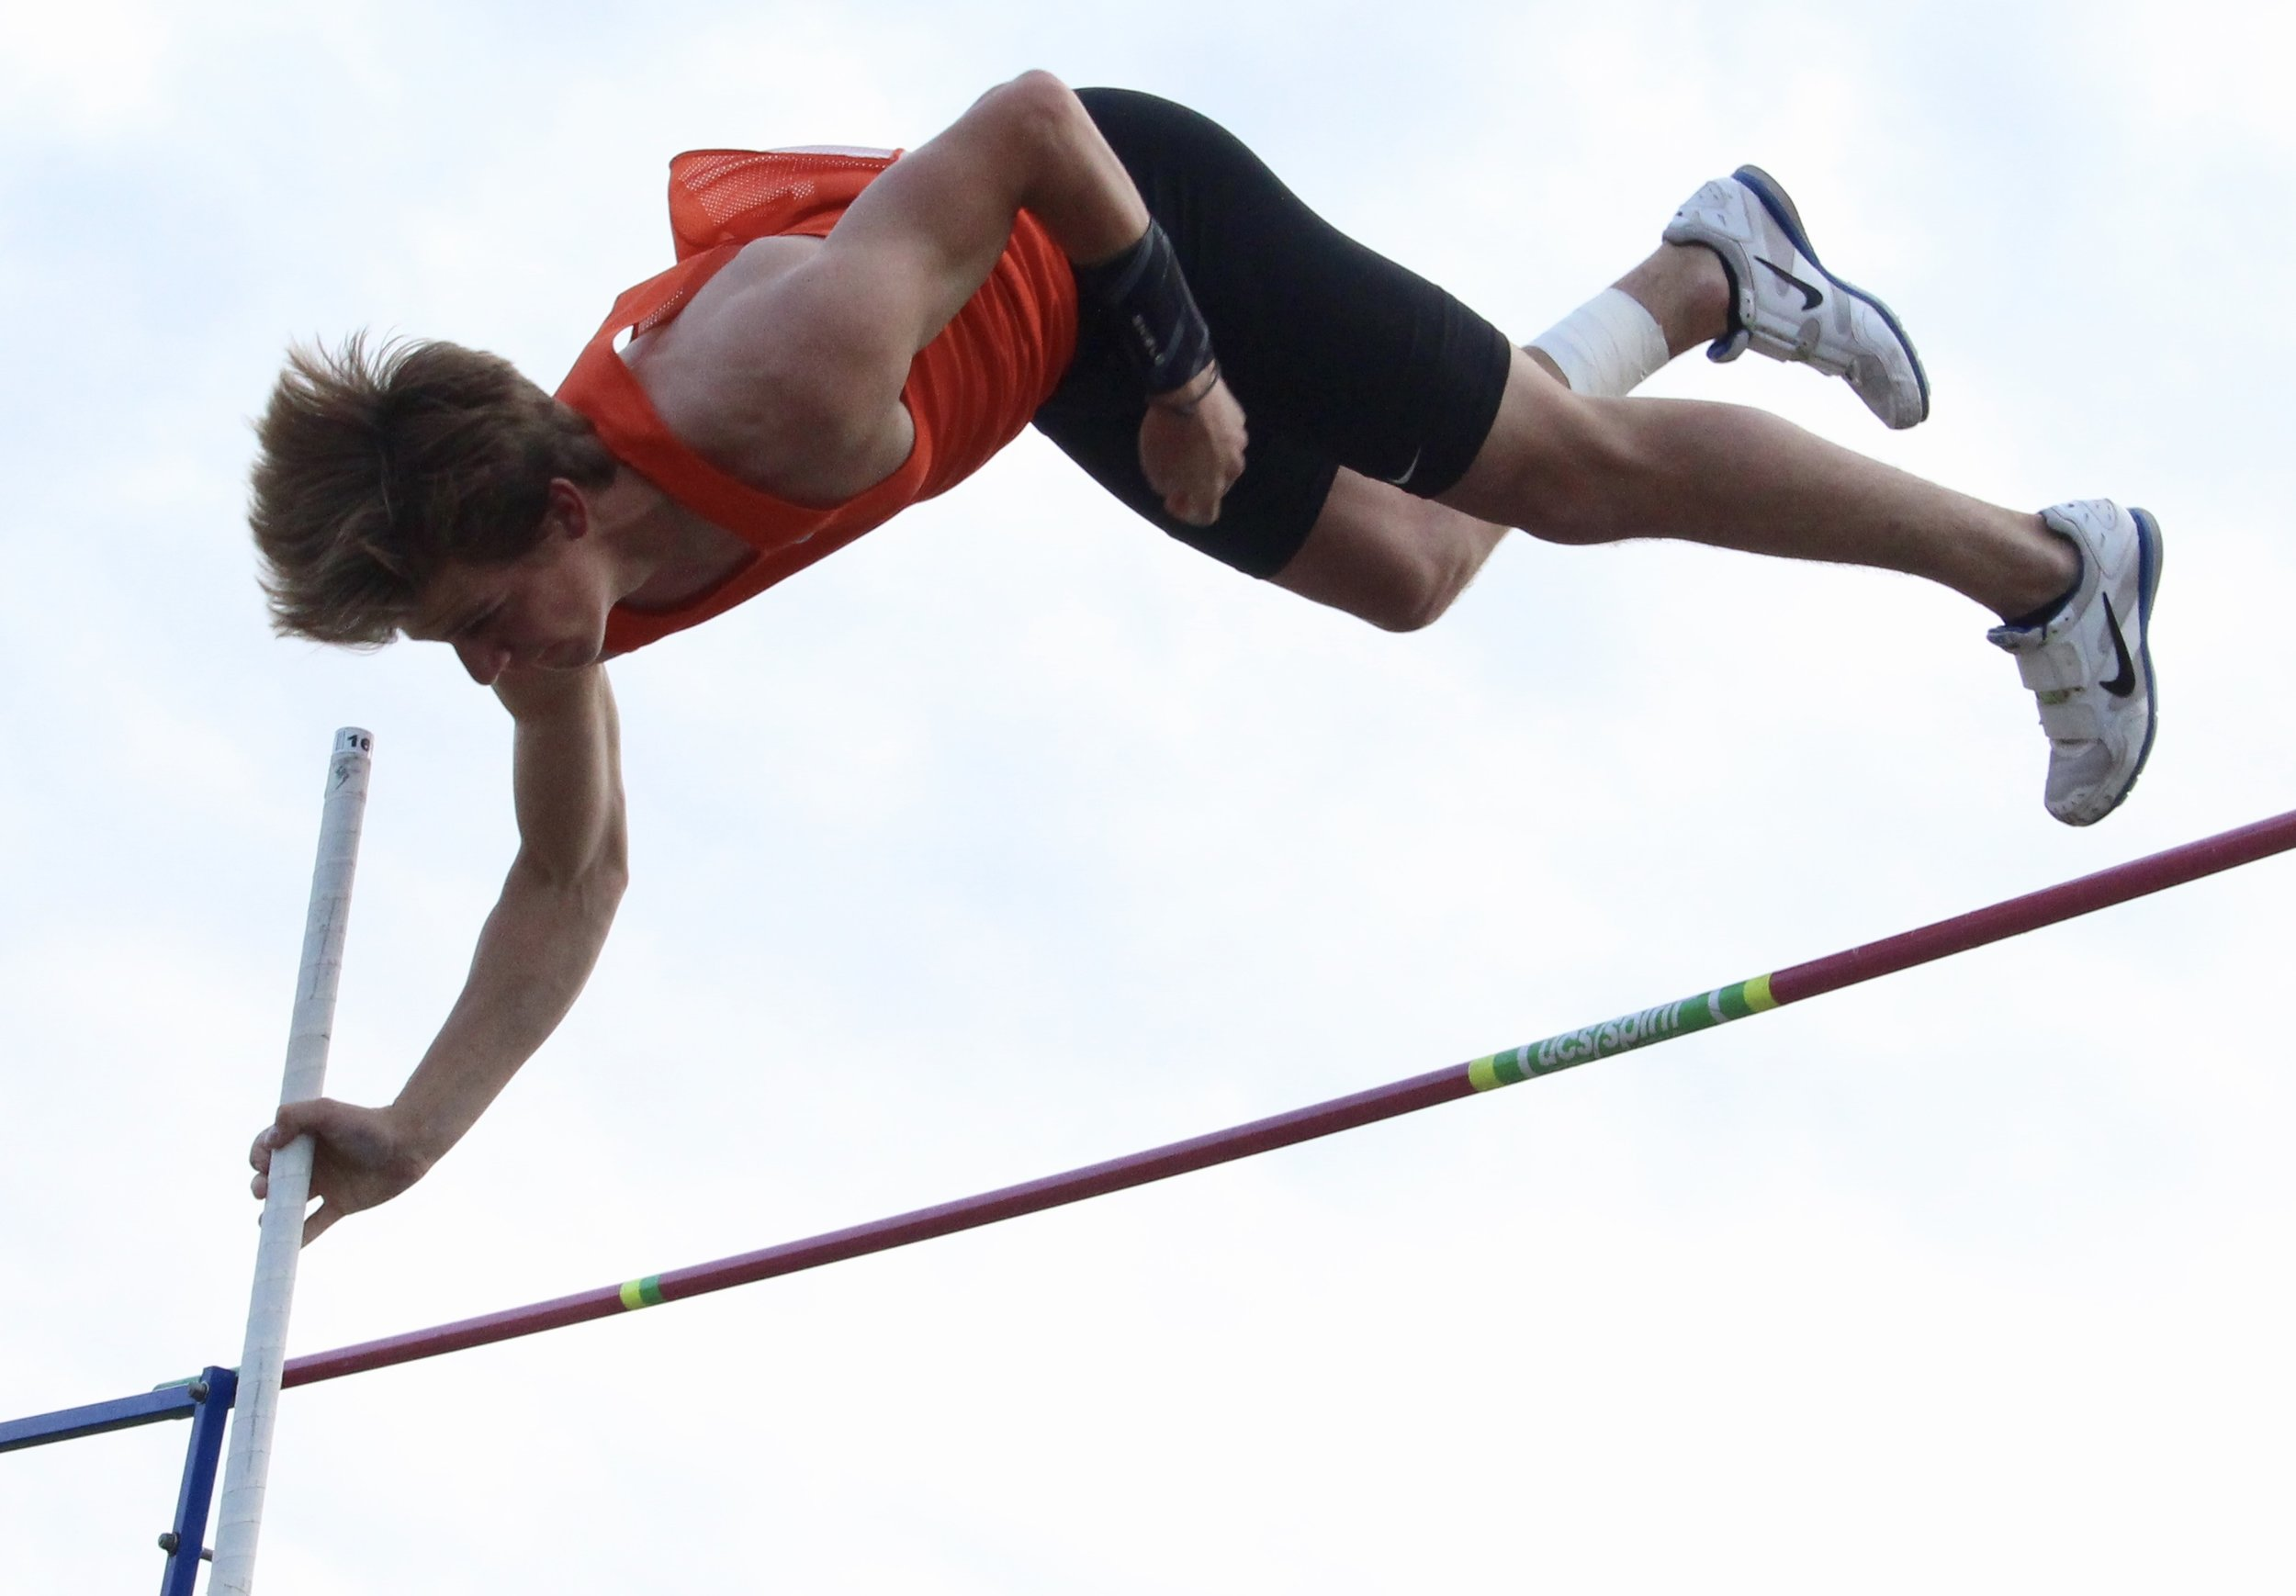 ROSS MARTIN/Special to the Citizen Platte County's Jacob Laures jumped 15 feet during the pole vault event to break the school record on Friday, April 26 in the Platte County Invitational at Pirate Stadium. Laures, a senior, broke the previous mark of 14-10, held by former teammate Bryce Bearden.